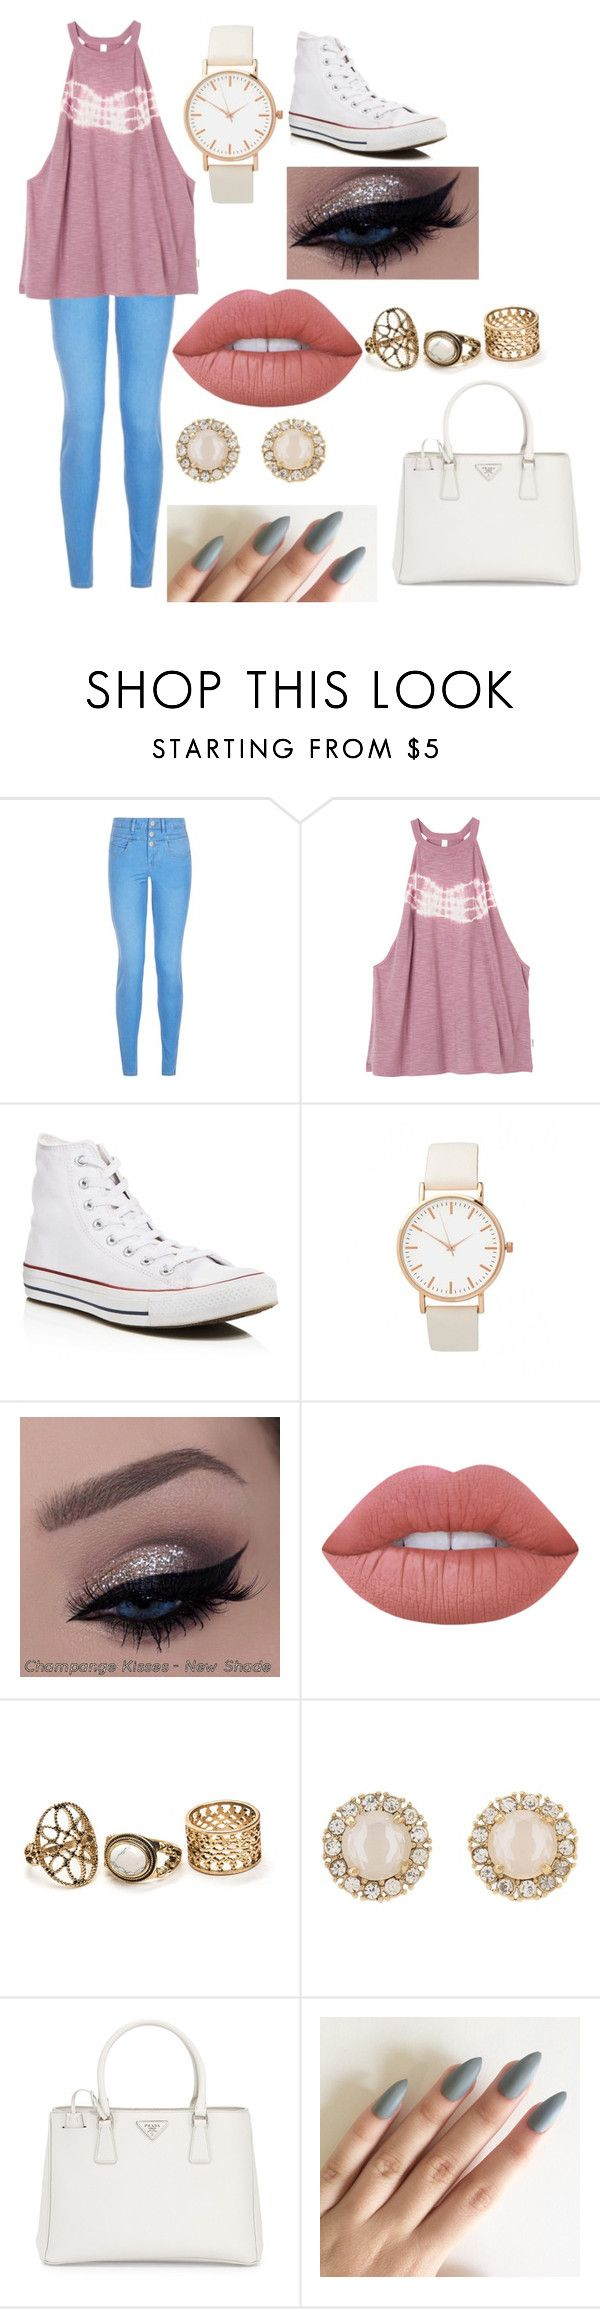 """made by malmal @ school ❤️"" by duhitsallison ❤ liked on Polyvore featuring New Look, RVCA, Converse, Lime Crime, Kate Spade and Prada"